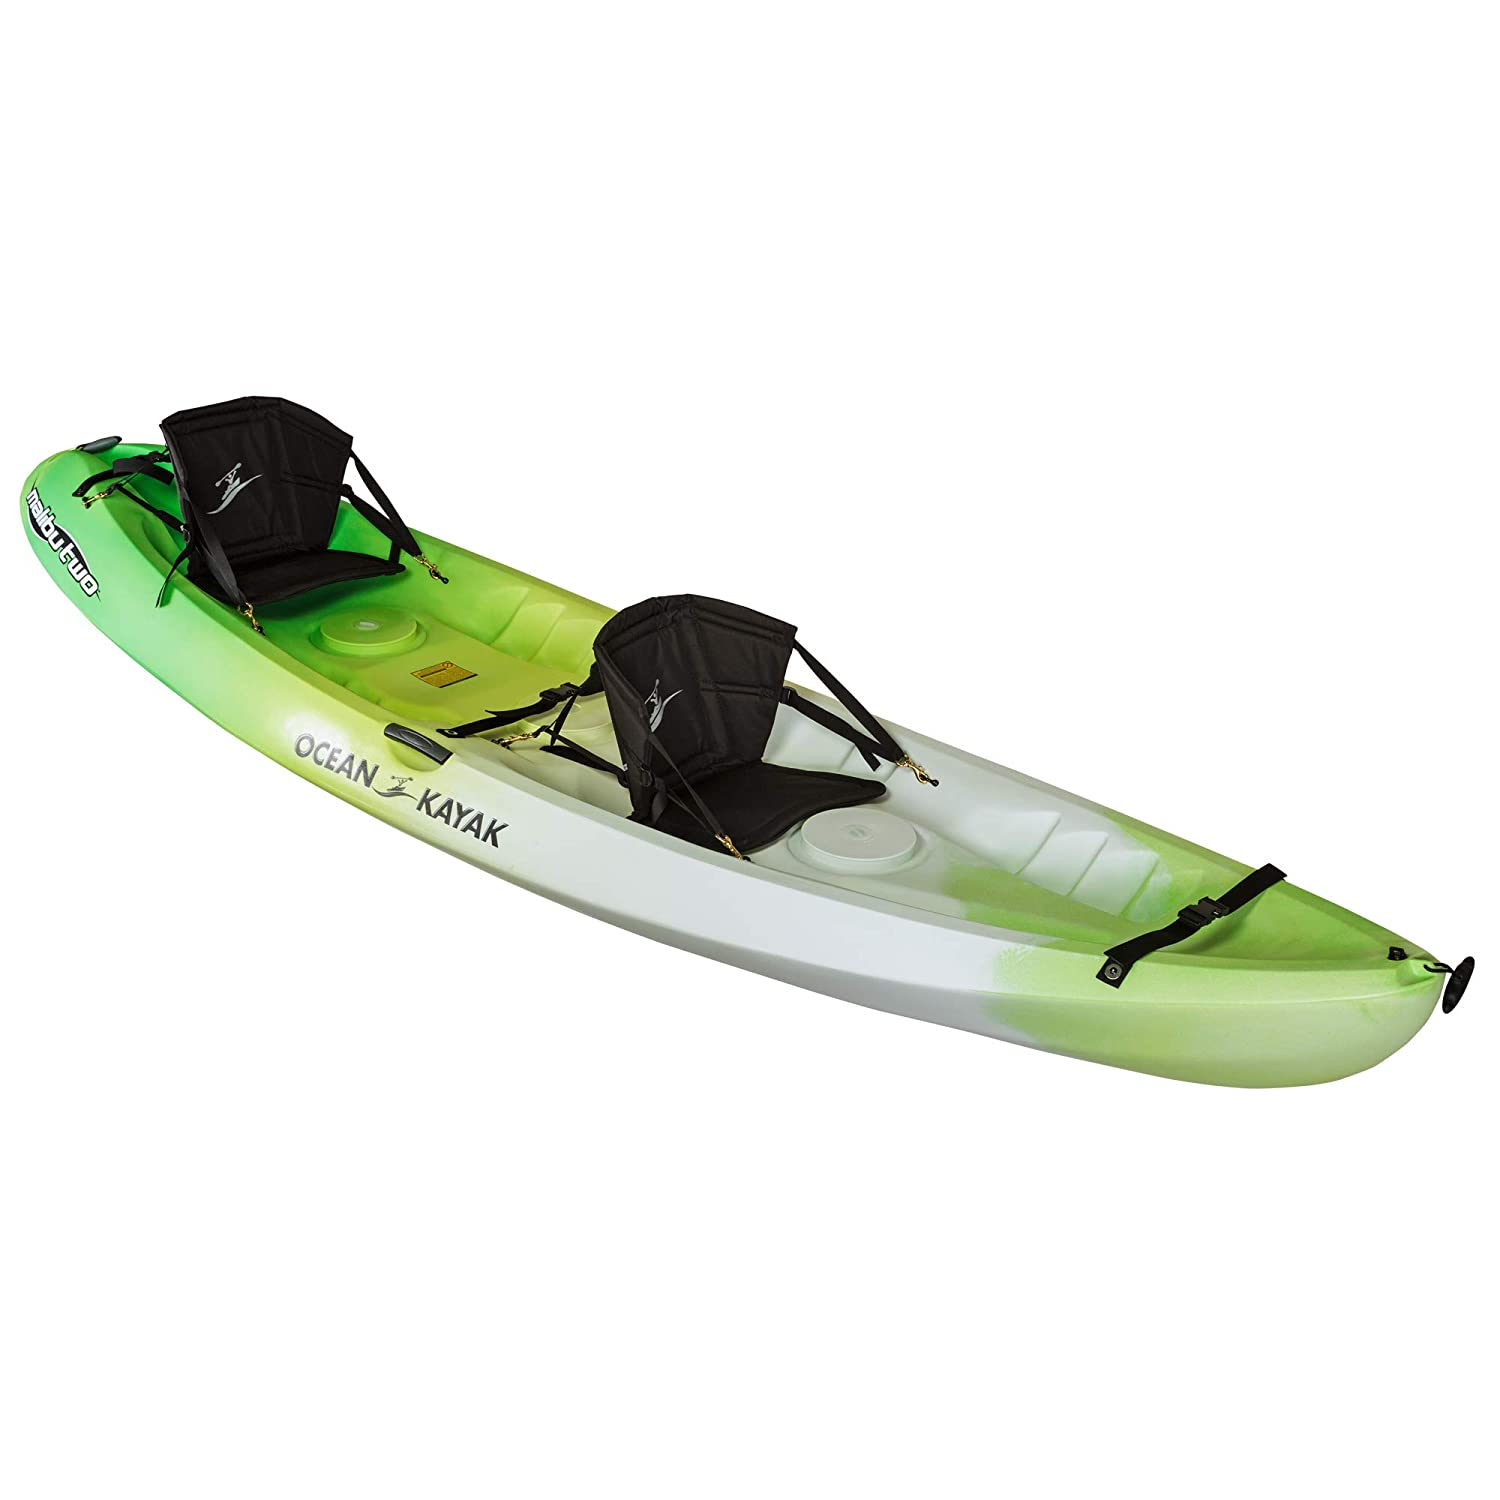 The Best Kayak for Beginner to Intermediate Level 'yakkers